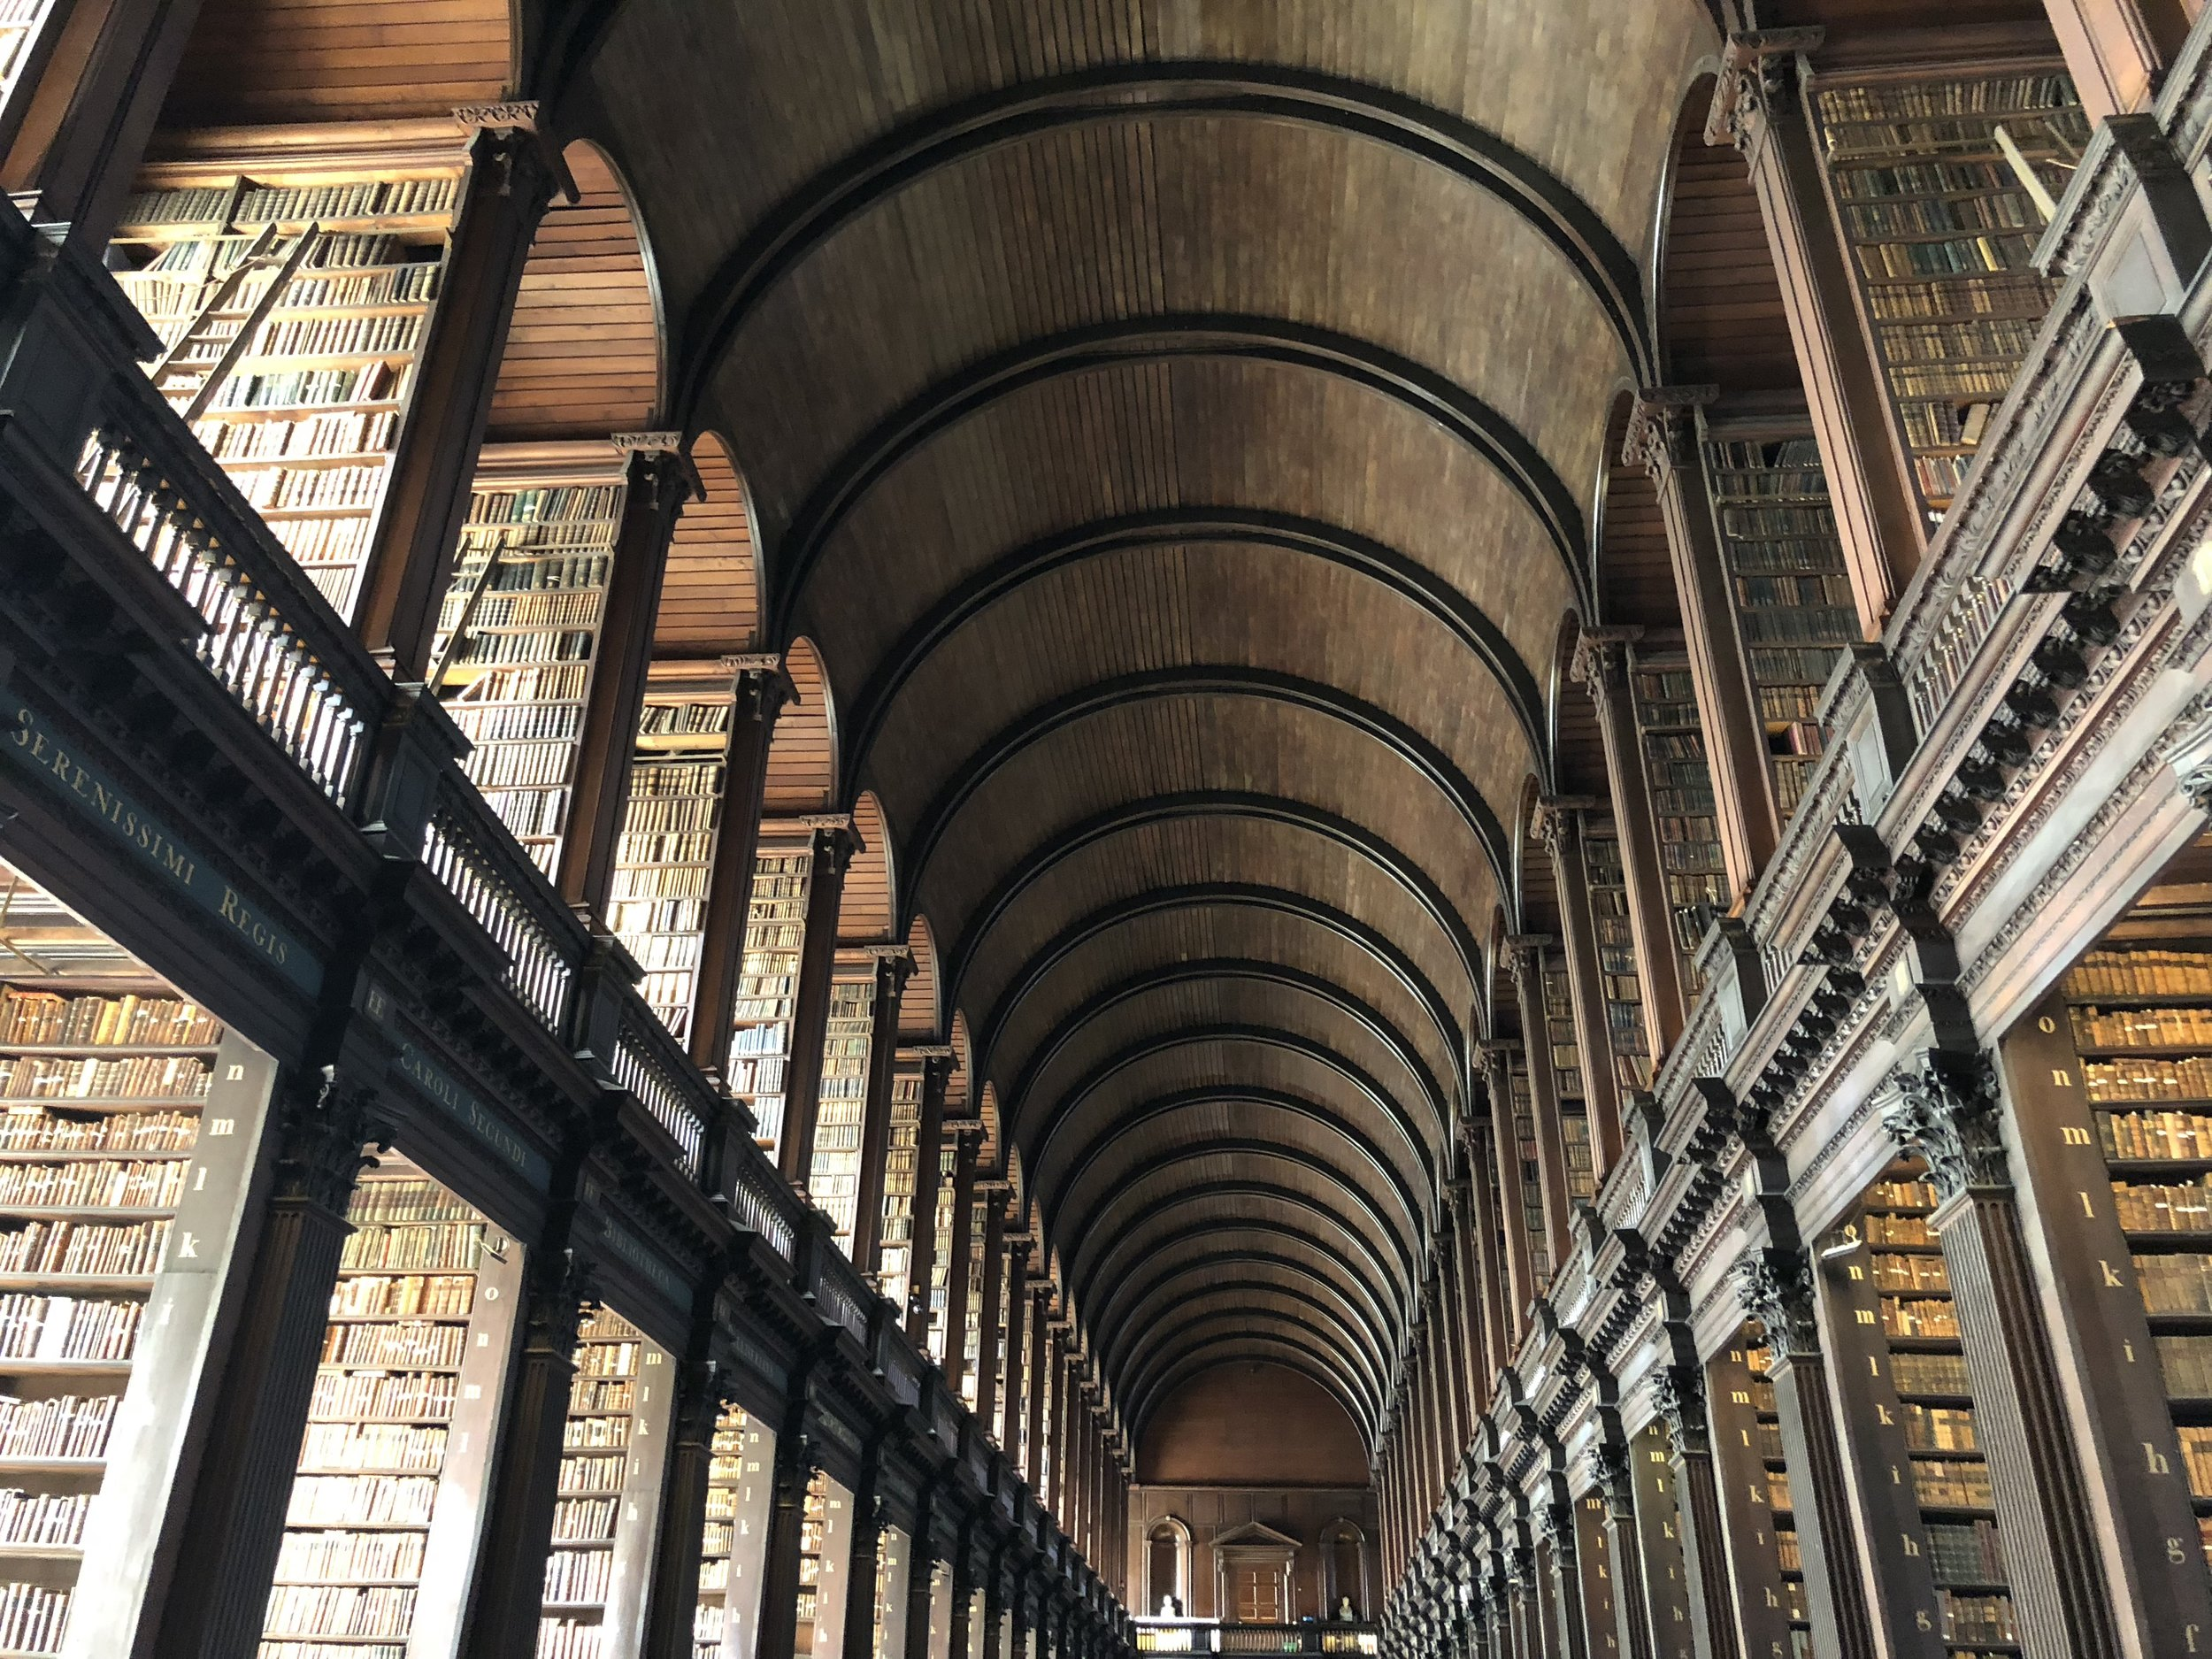 The Old Library at Trinity College Dublin